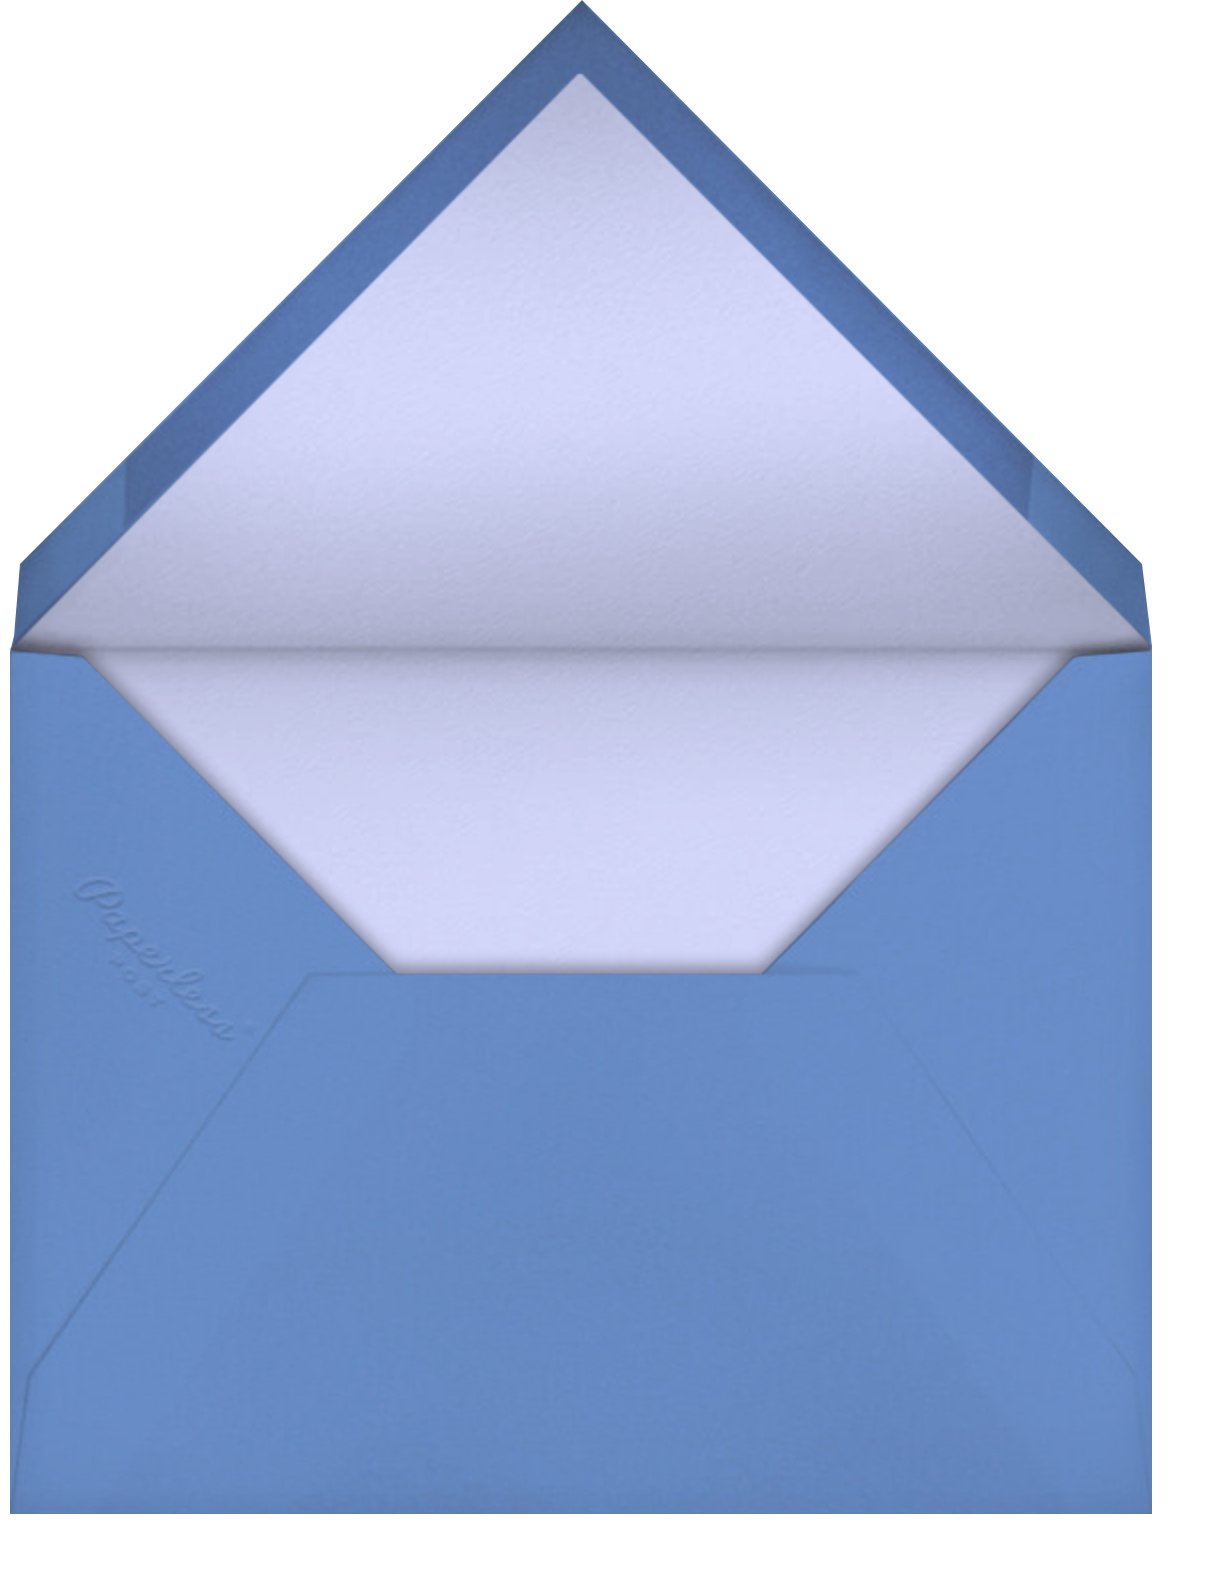 Gradient Painted - Blue - Paperless Post - Breonna Taylor birthday cards - envelope back